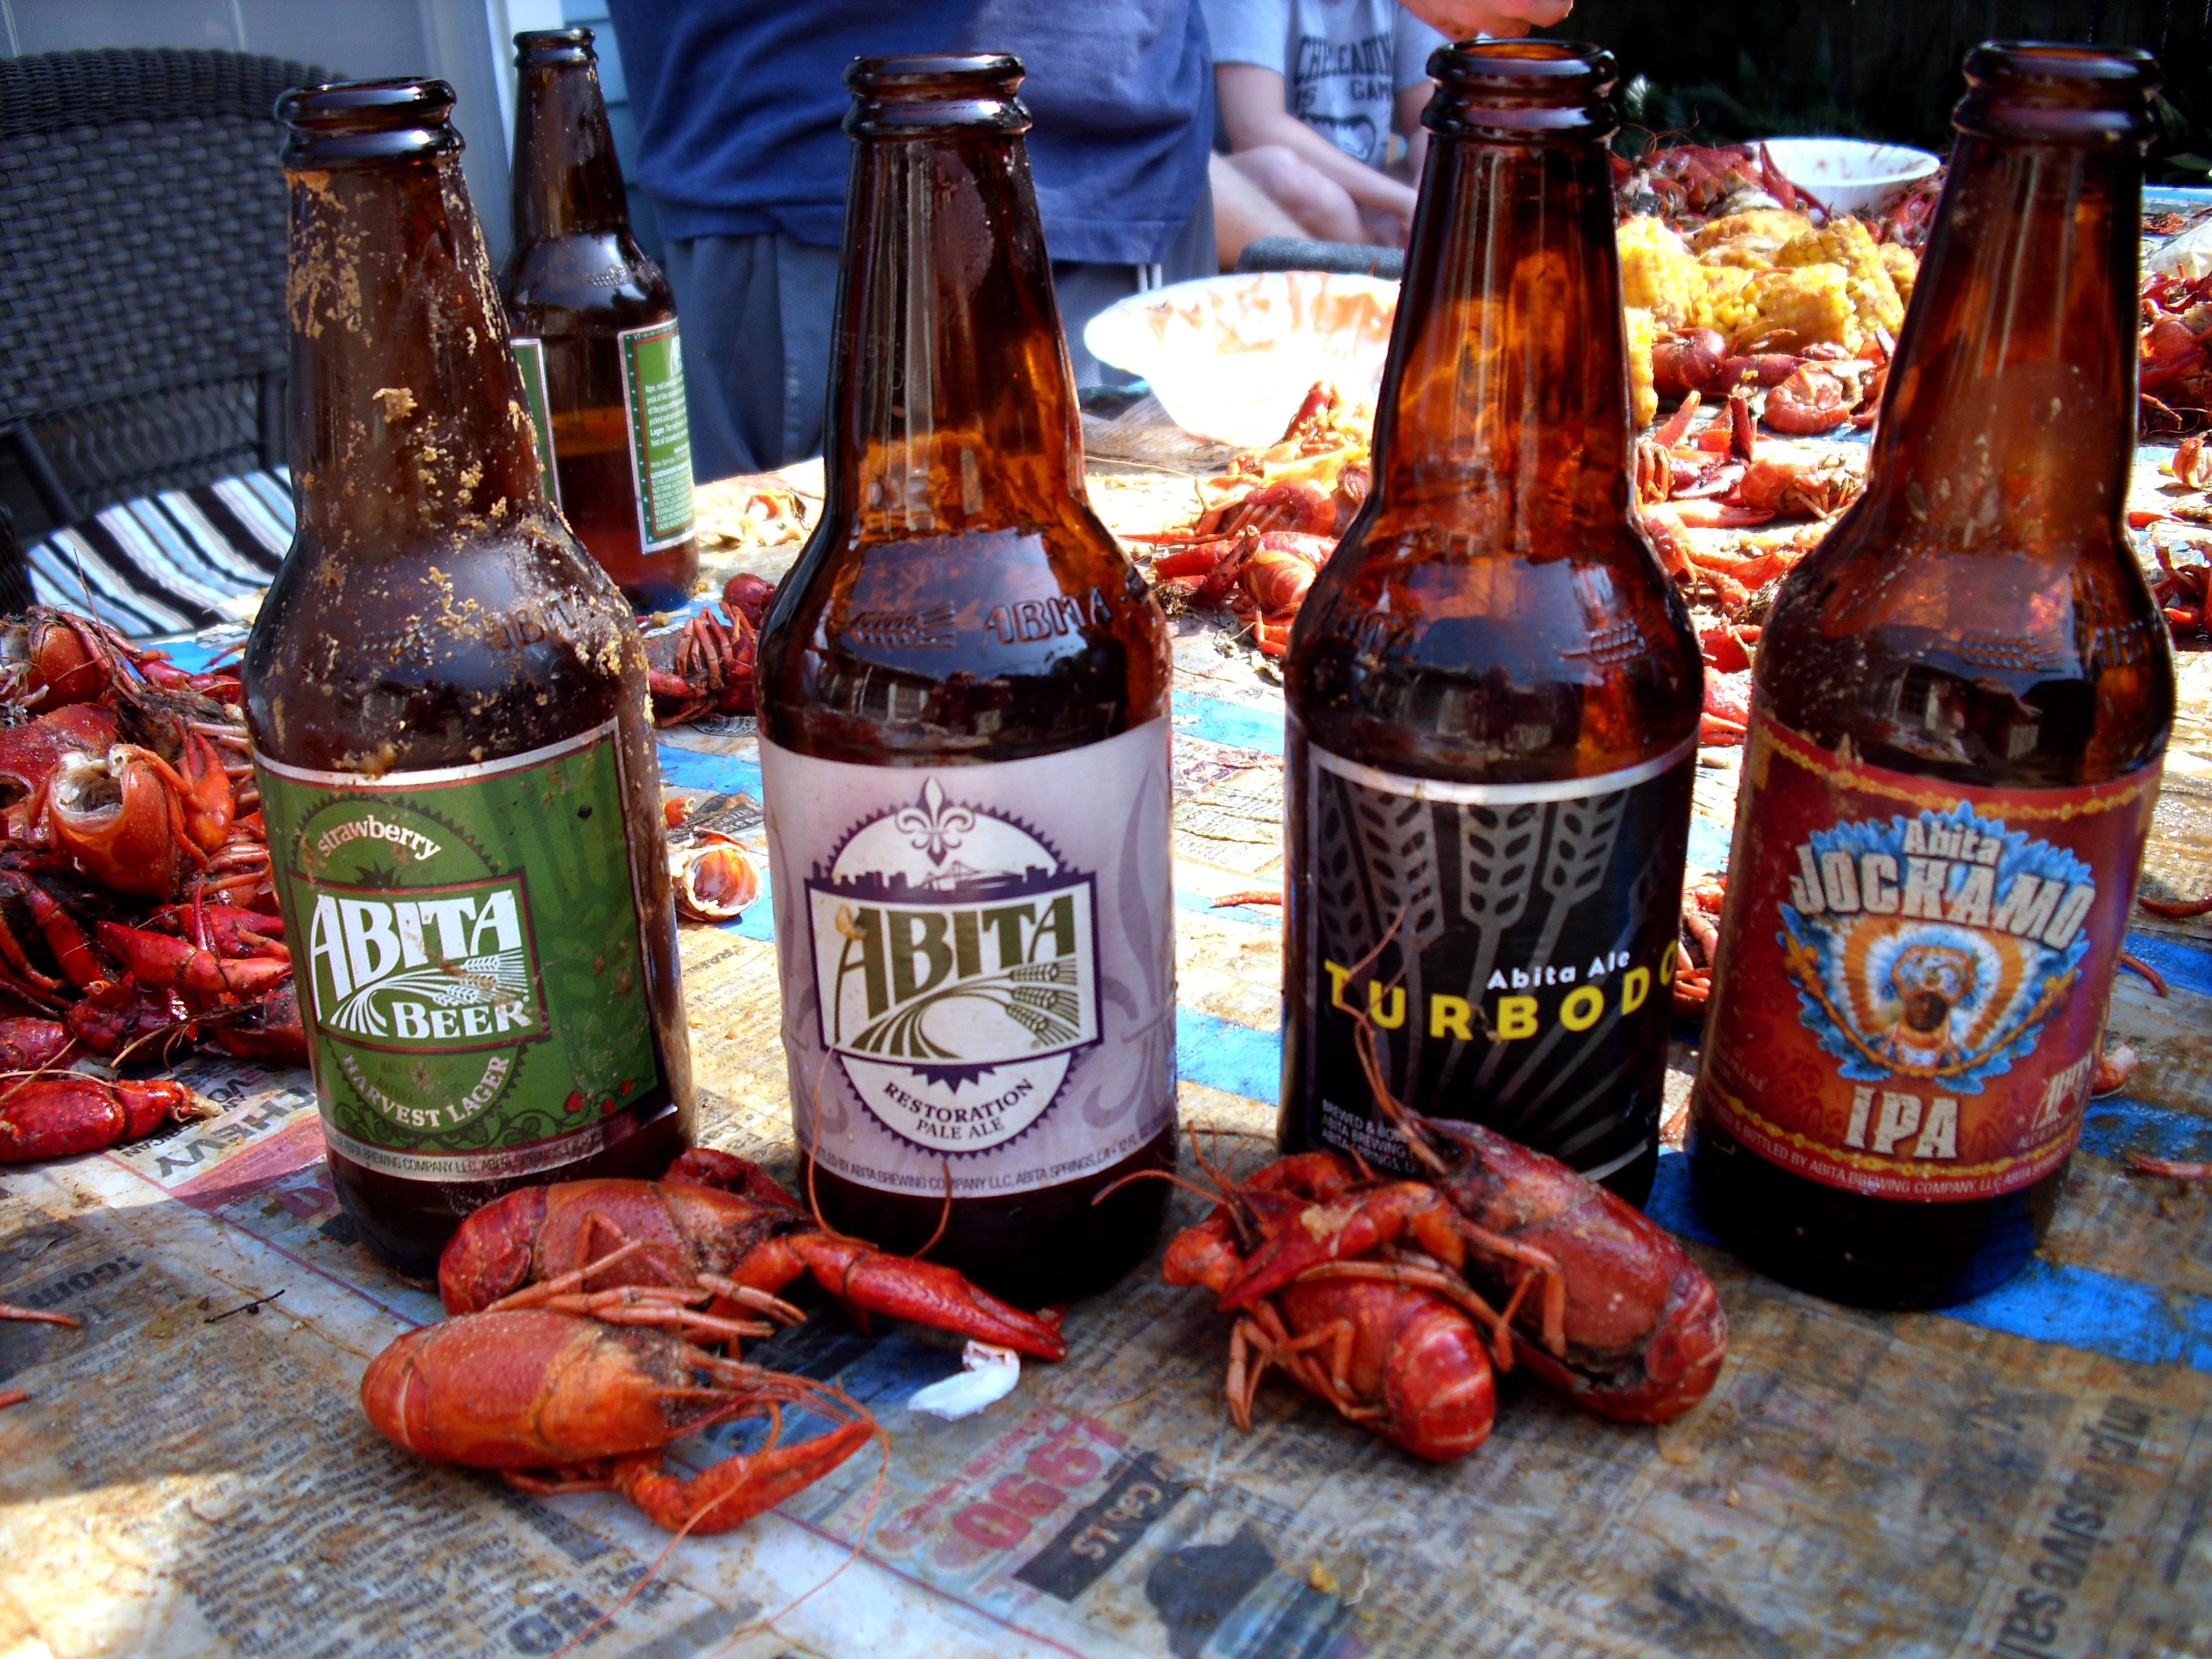 Abita Beer Will Be One Of The 100 S Of Beers At Beerbaconmusic 2 Day Festival May 17th And 18th At Frederick Fairgrounds In Marylan Abita Beer Beer Bacon Beer